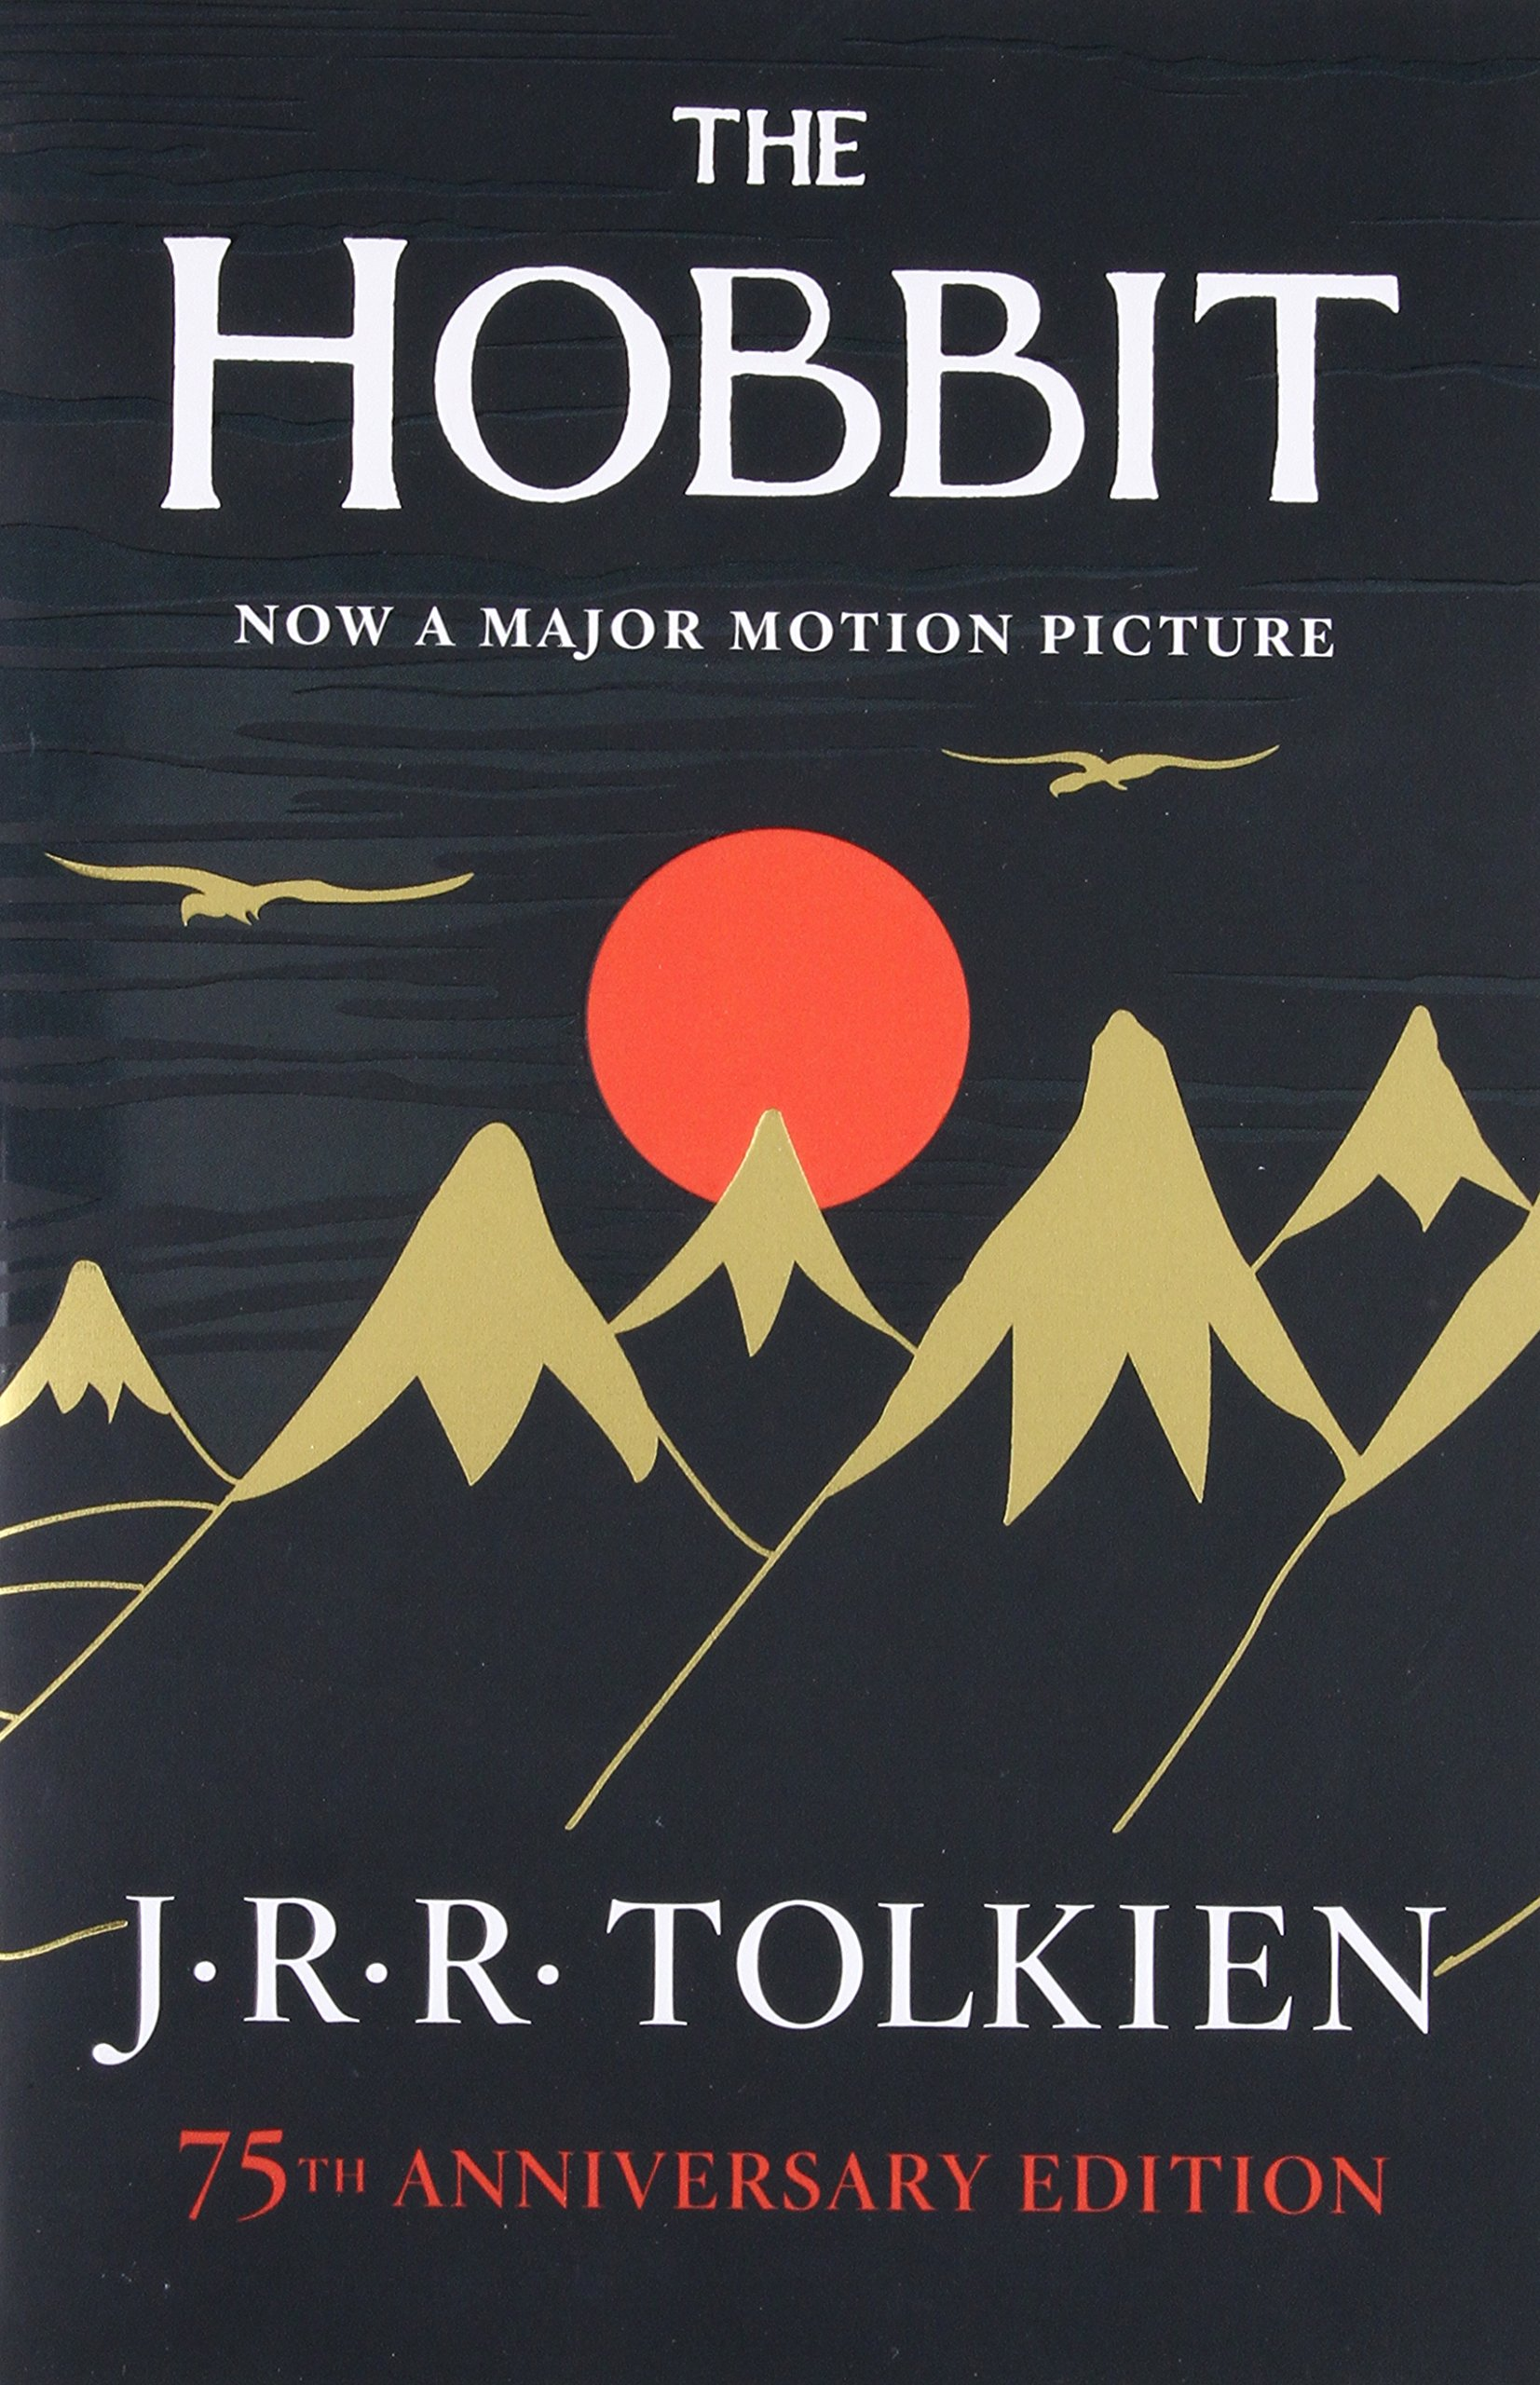 the hobbit by jrr tolkein